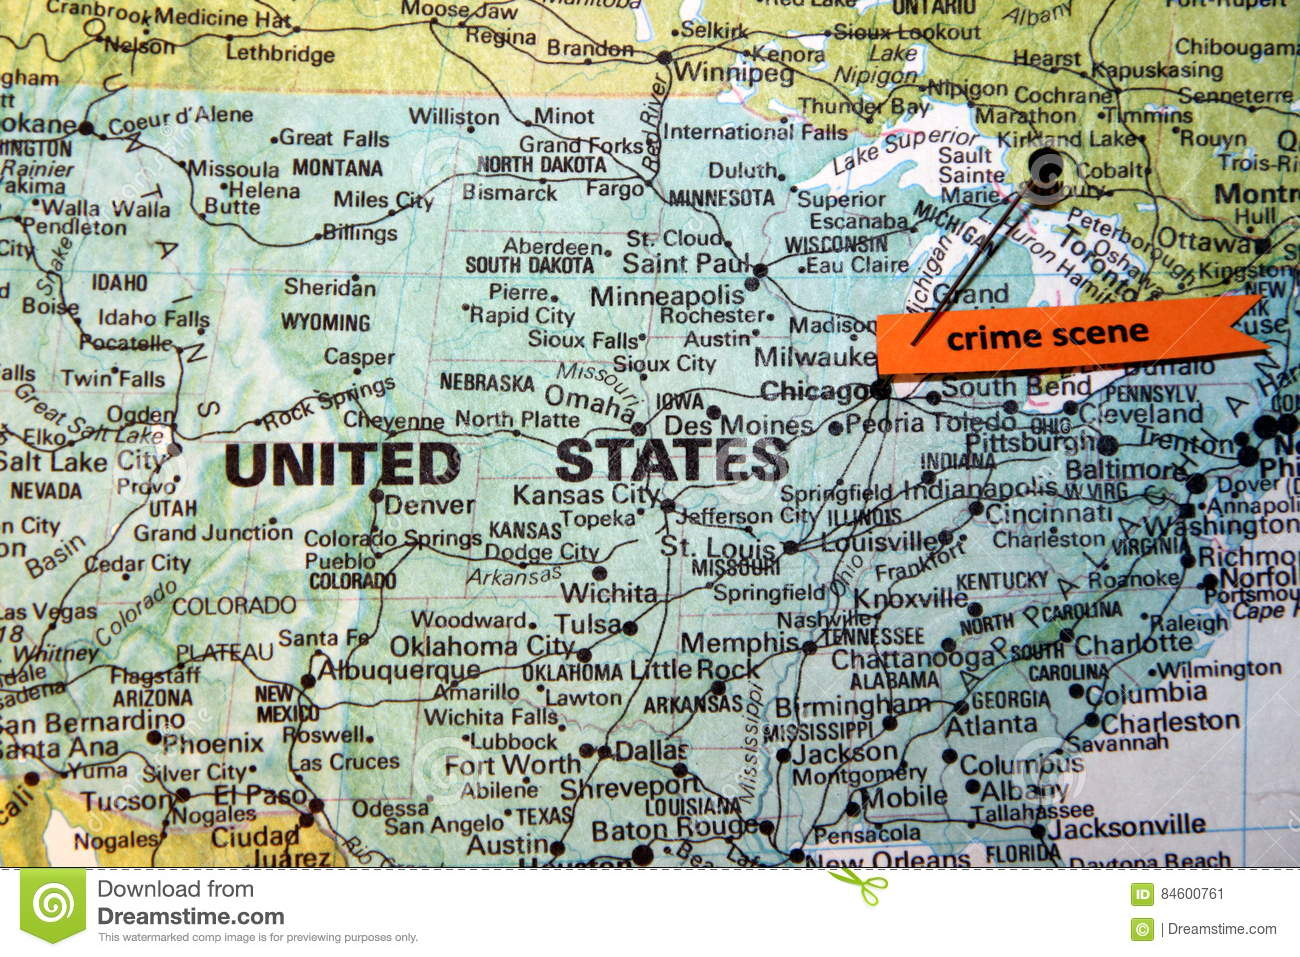 Chicago Shown As Crime Scene On U.S. Map Stock Image - Image ...